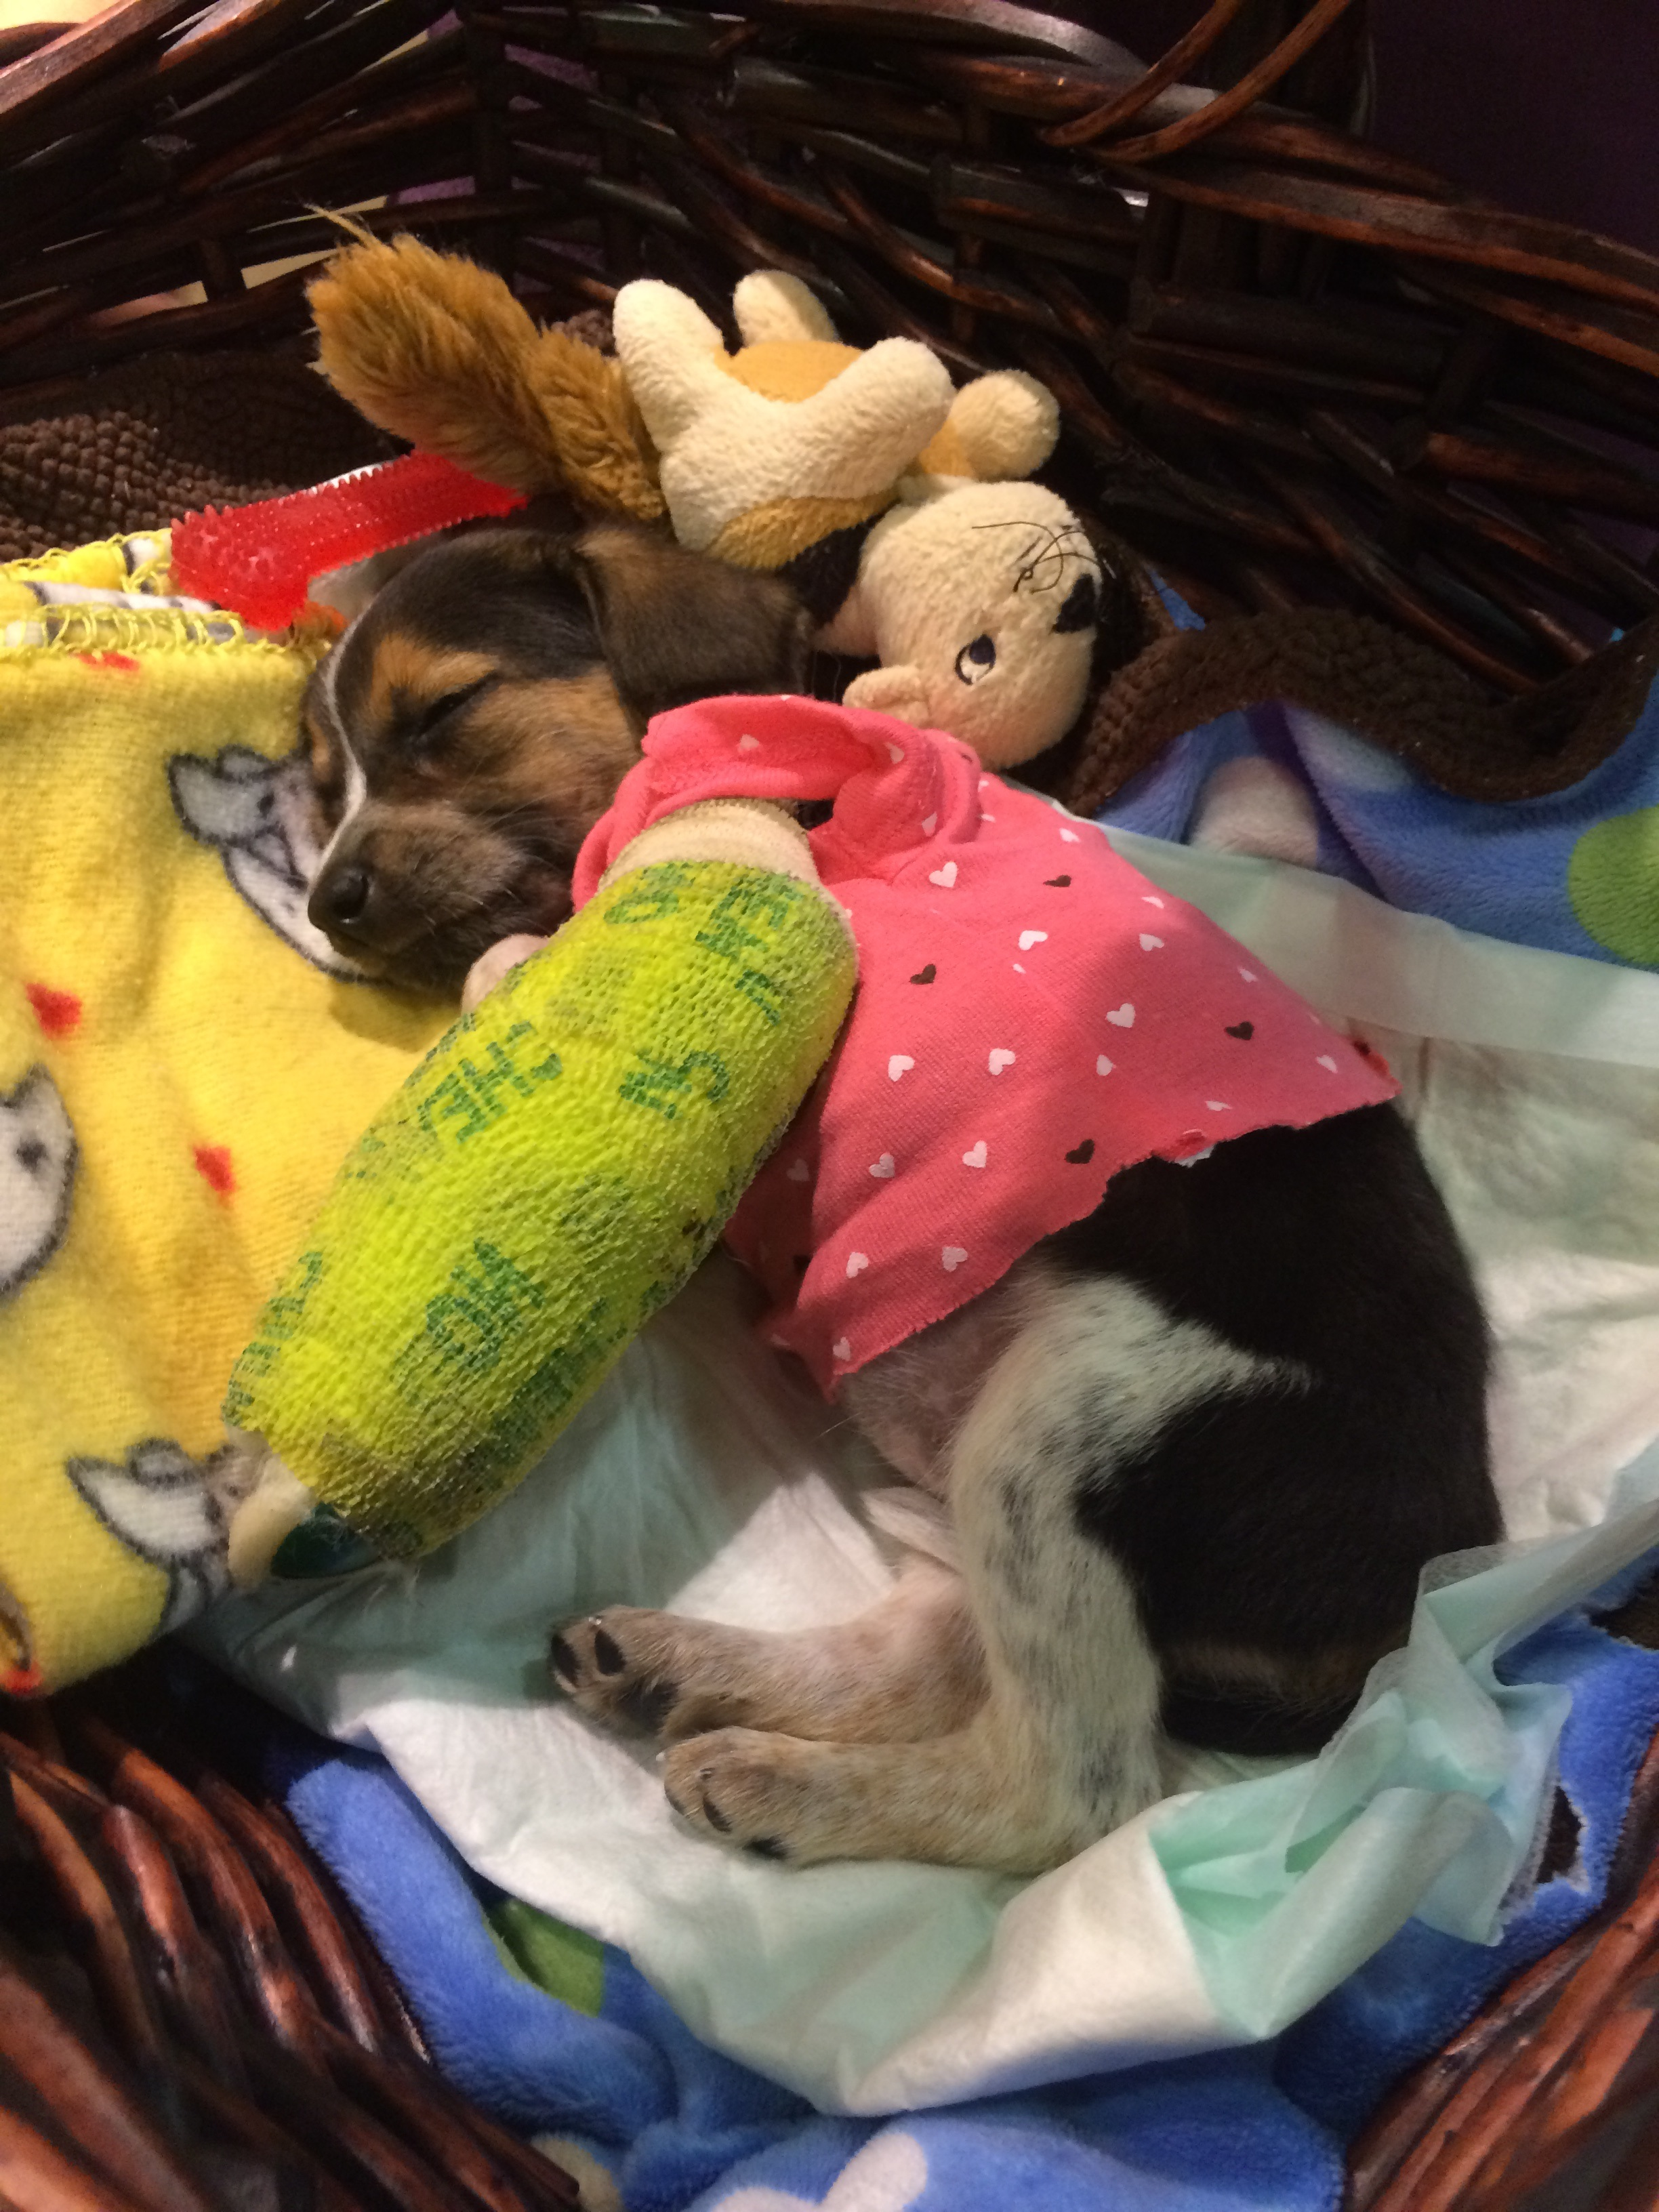 Ladybug, 3 weeks old, recovering in foster care after being attacked by a larger dog.